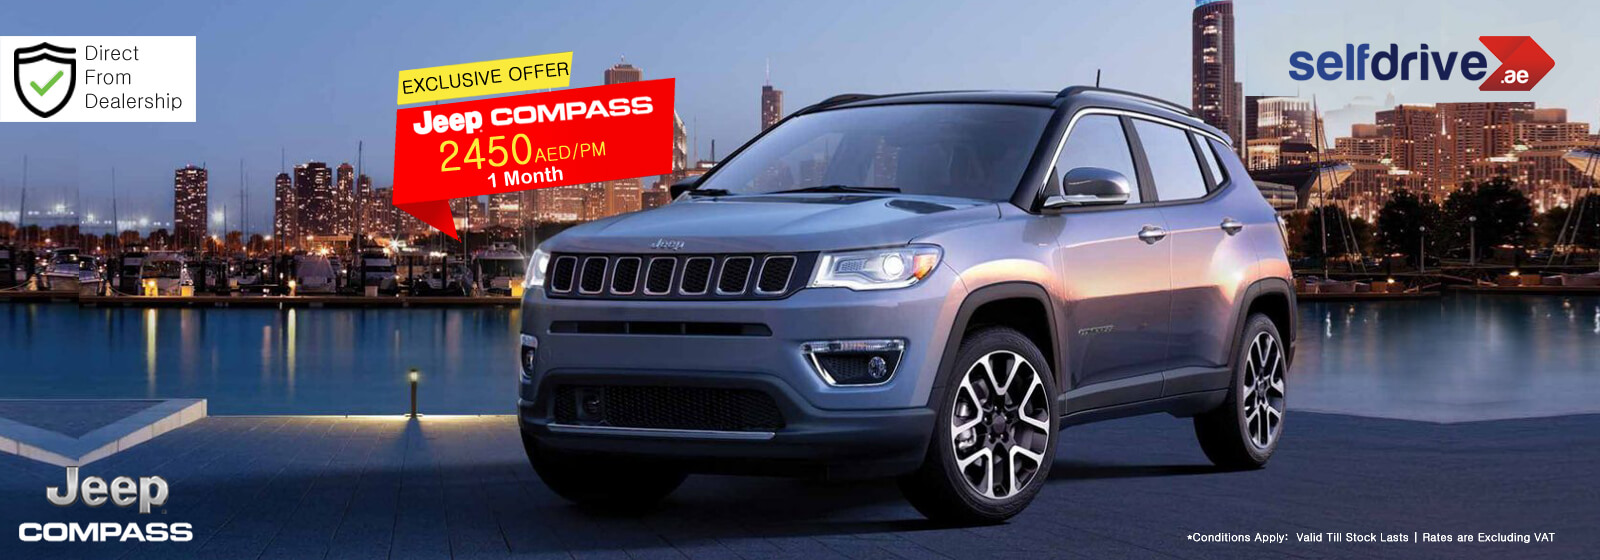 Rent a Jeep Compass in  Dubai